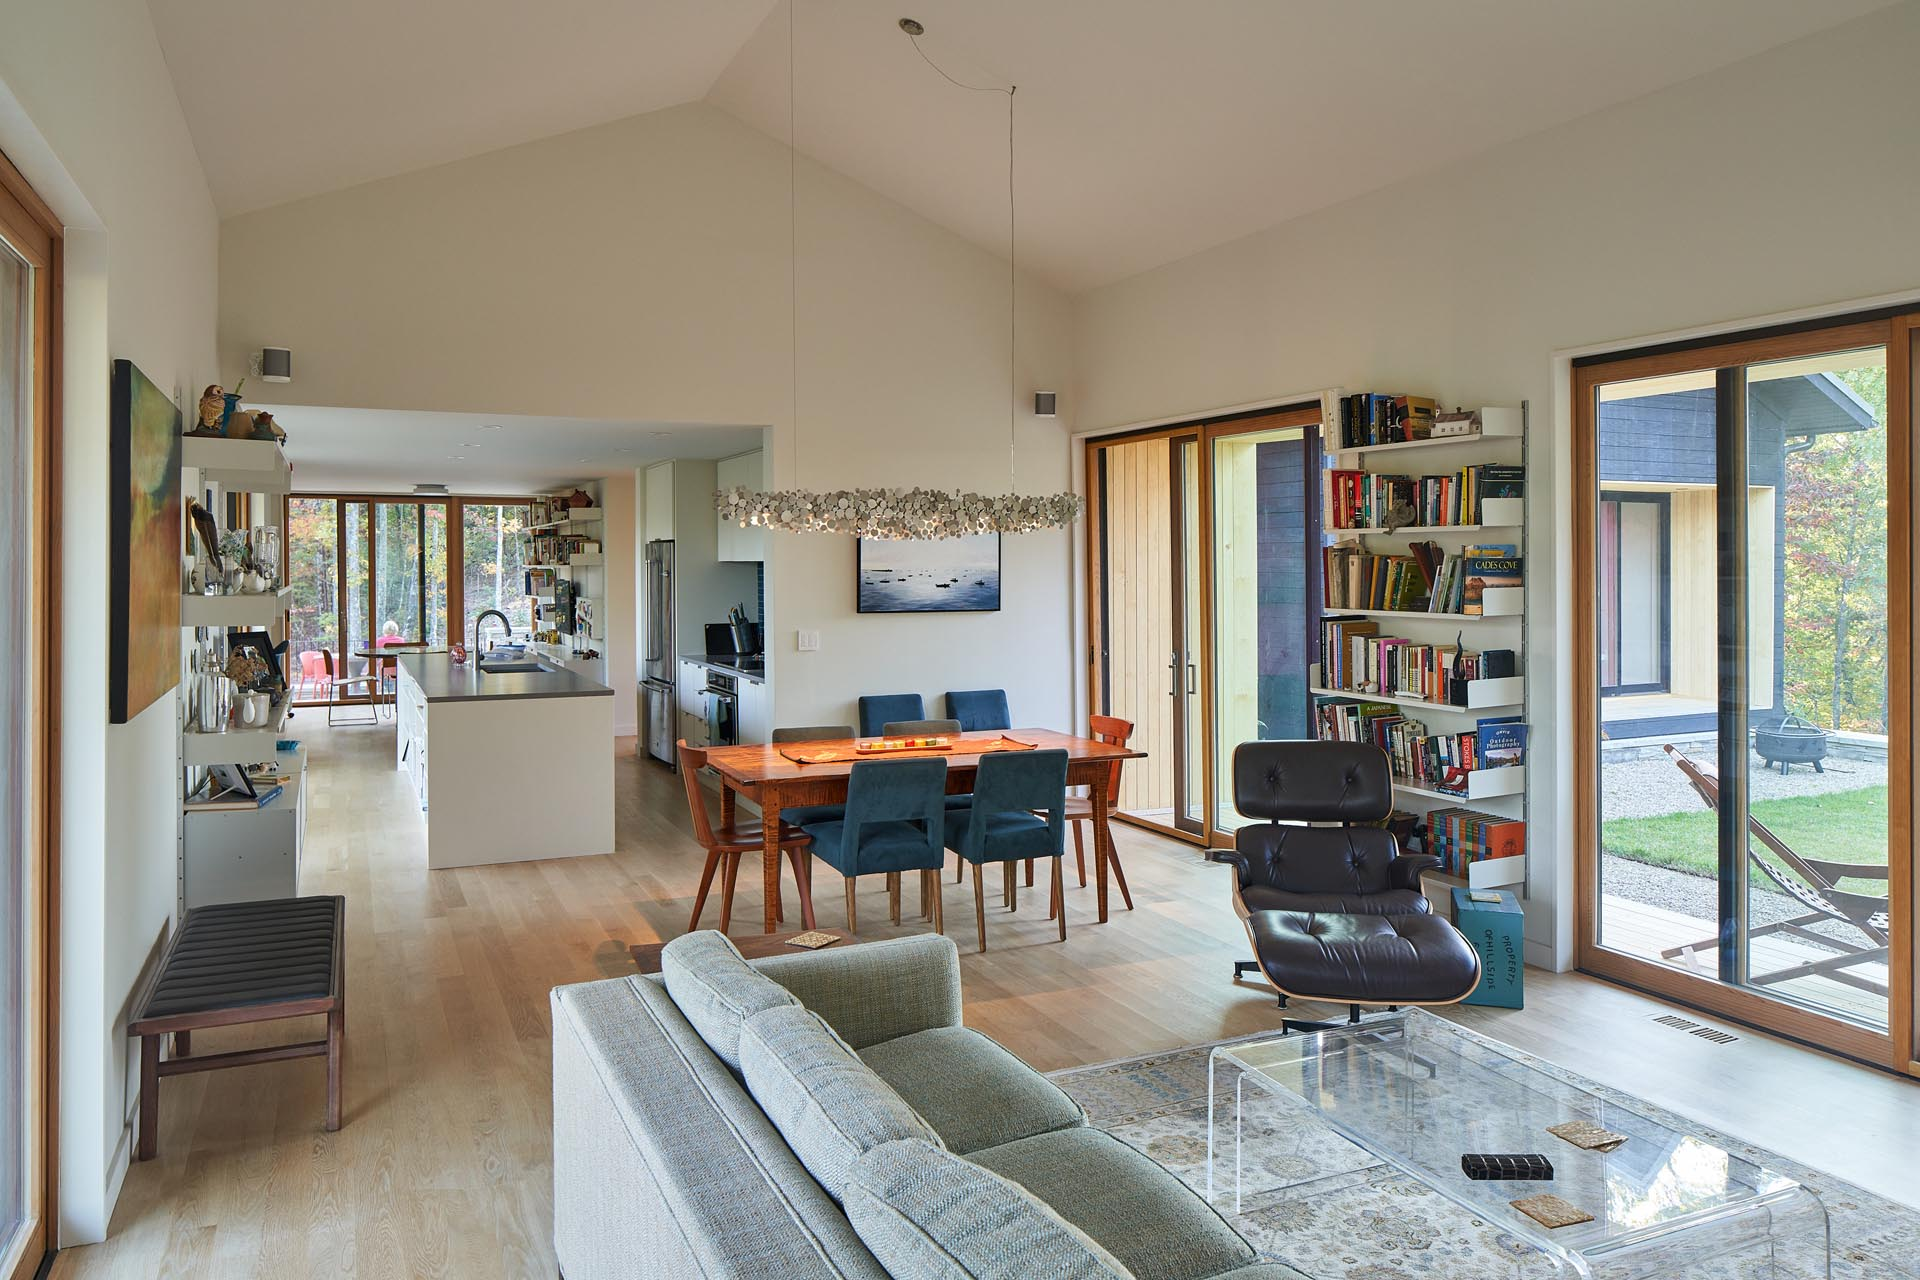 An open plan living room and dining area that has a vaulted ceiling, making the space feel larger.